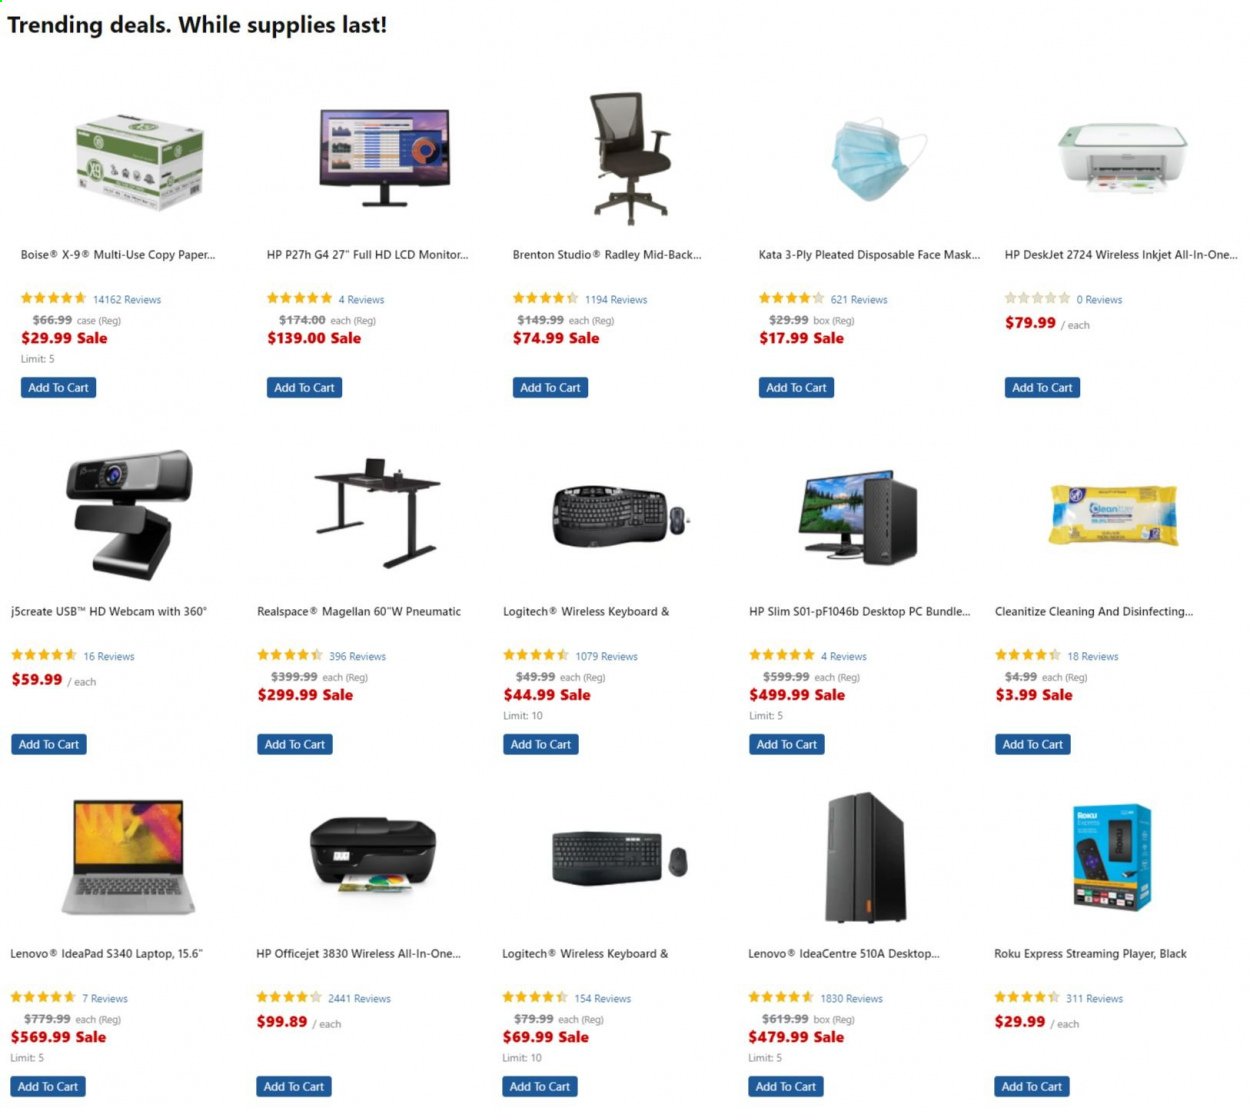 Office DEPOT Flyer - Sales products - box, cart, full hd, laptop, Lenovo, Logitech, Magellan, mask, monitor, webcam, HP, keyboard, officejet, all-in-one, deskjet, face mask. Page 1.